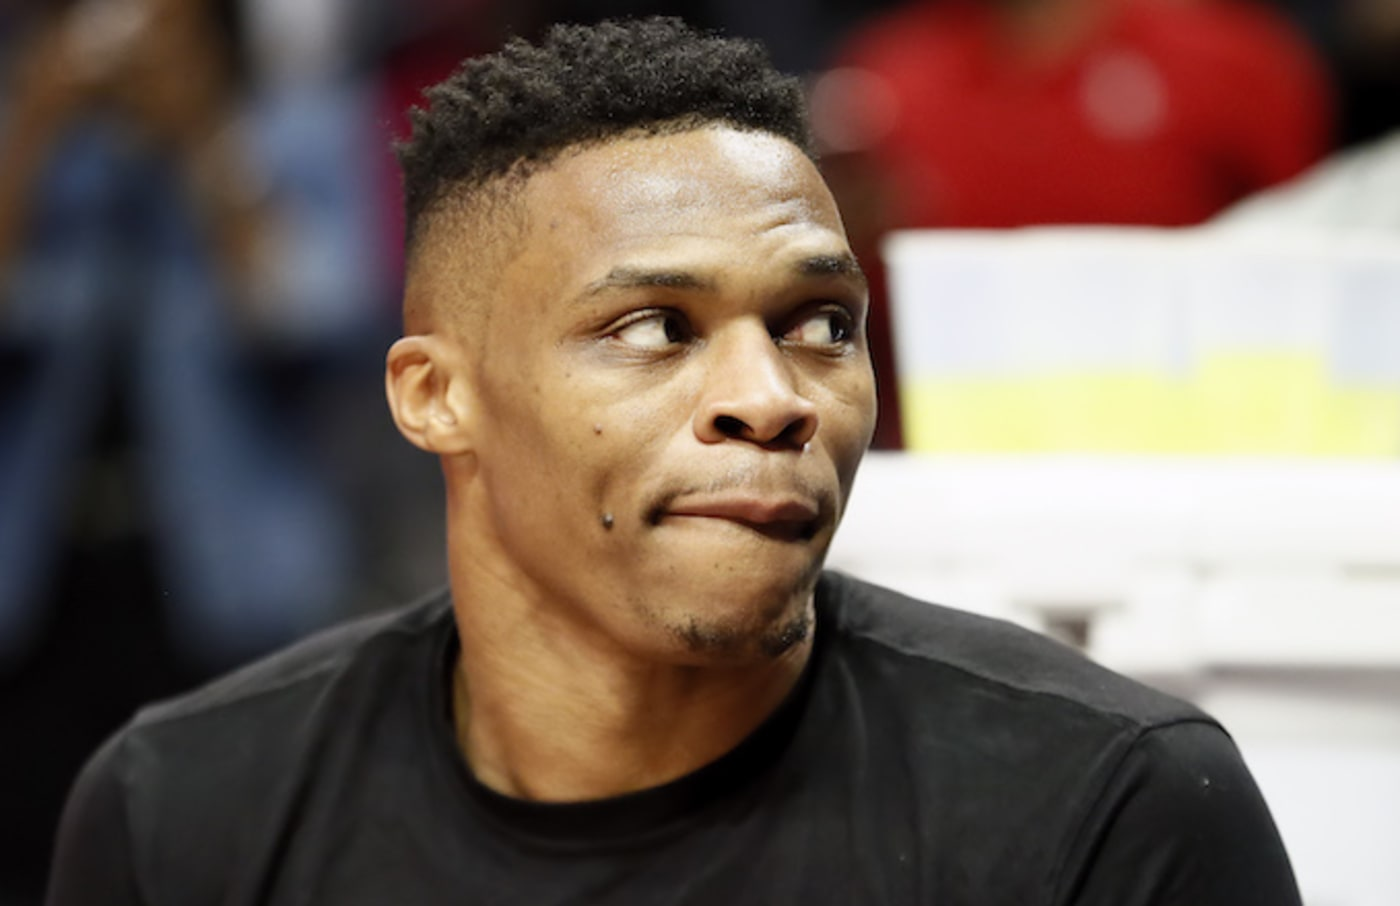 Russell Westbrook looks on during the game against the LA Clippers.